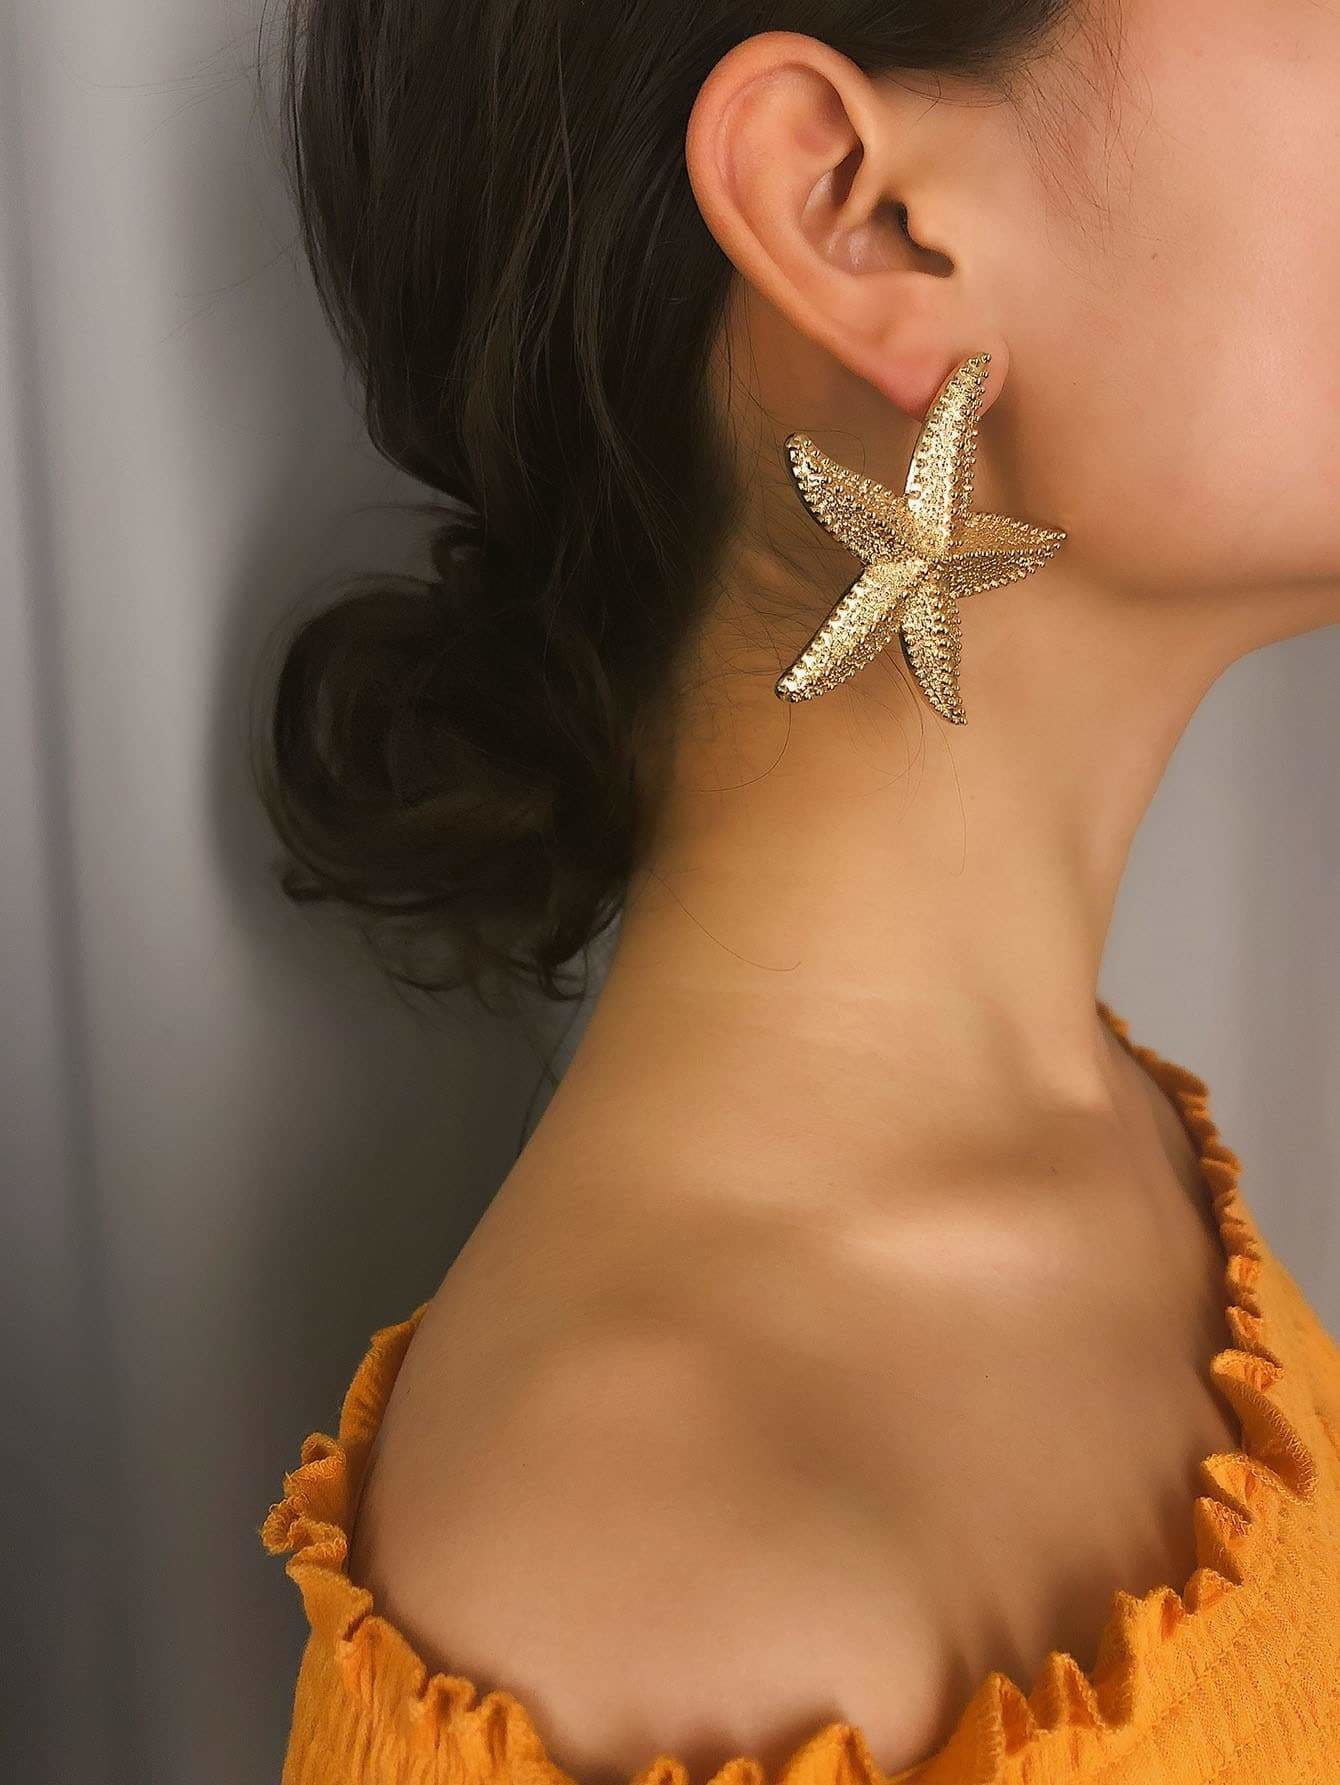 Seastar Shaped Stud Earrings 1pair